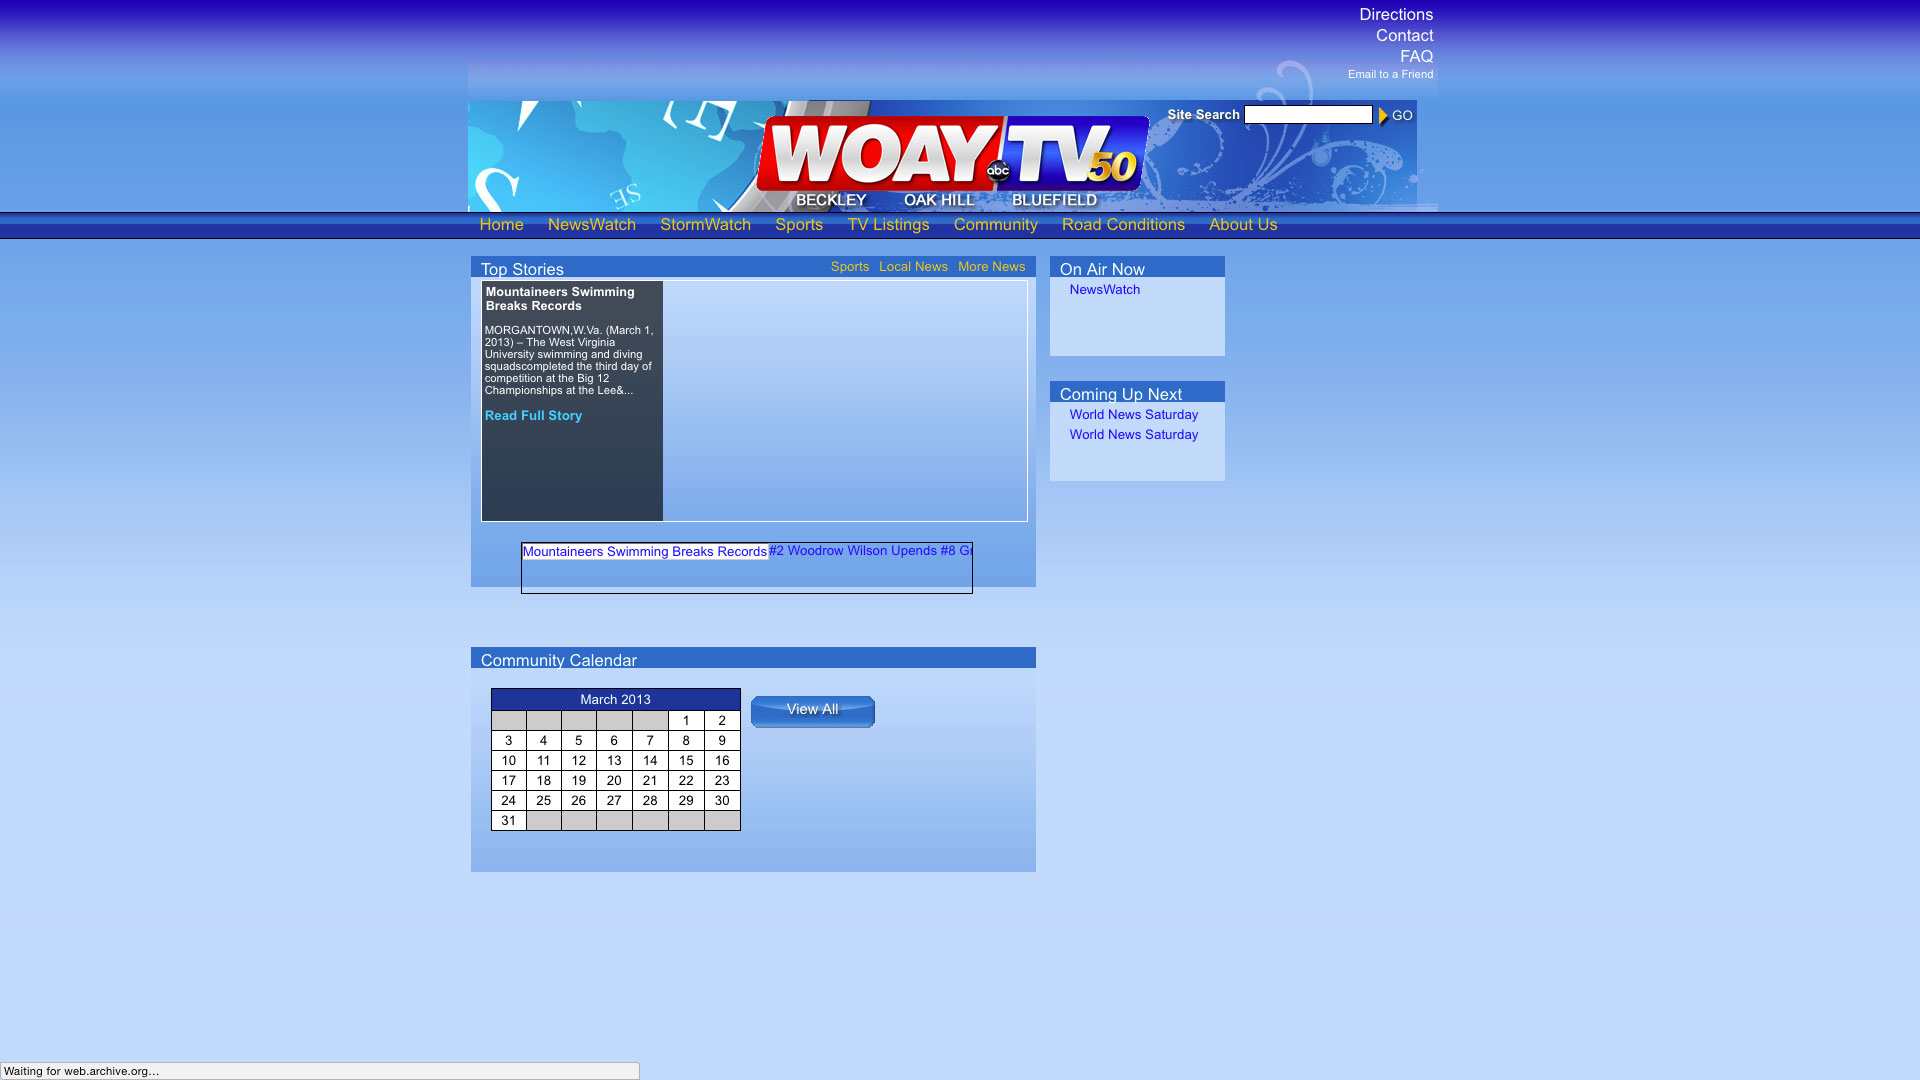 woay-top-stories-web-design